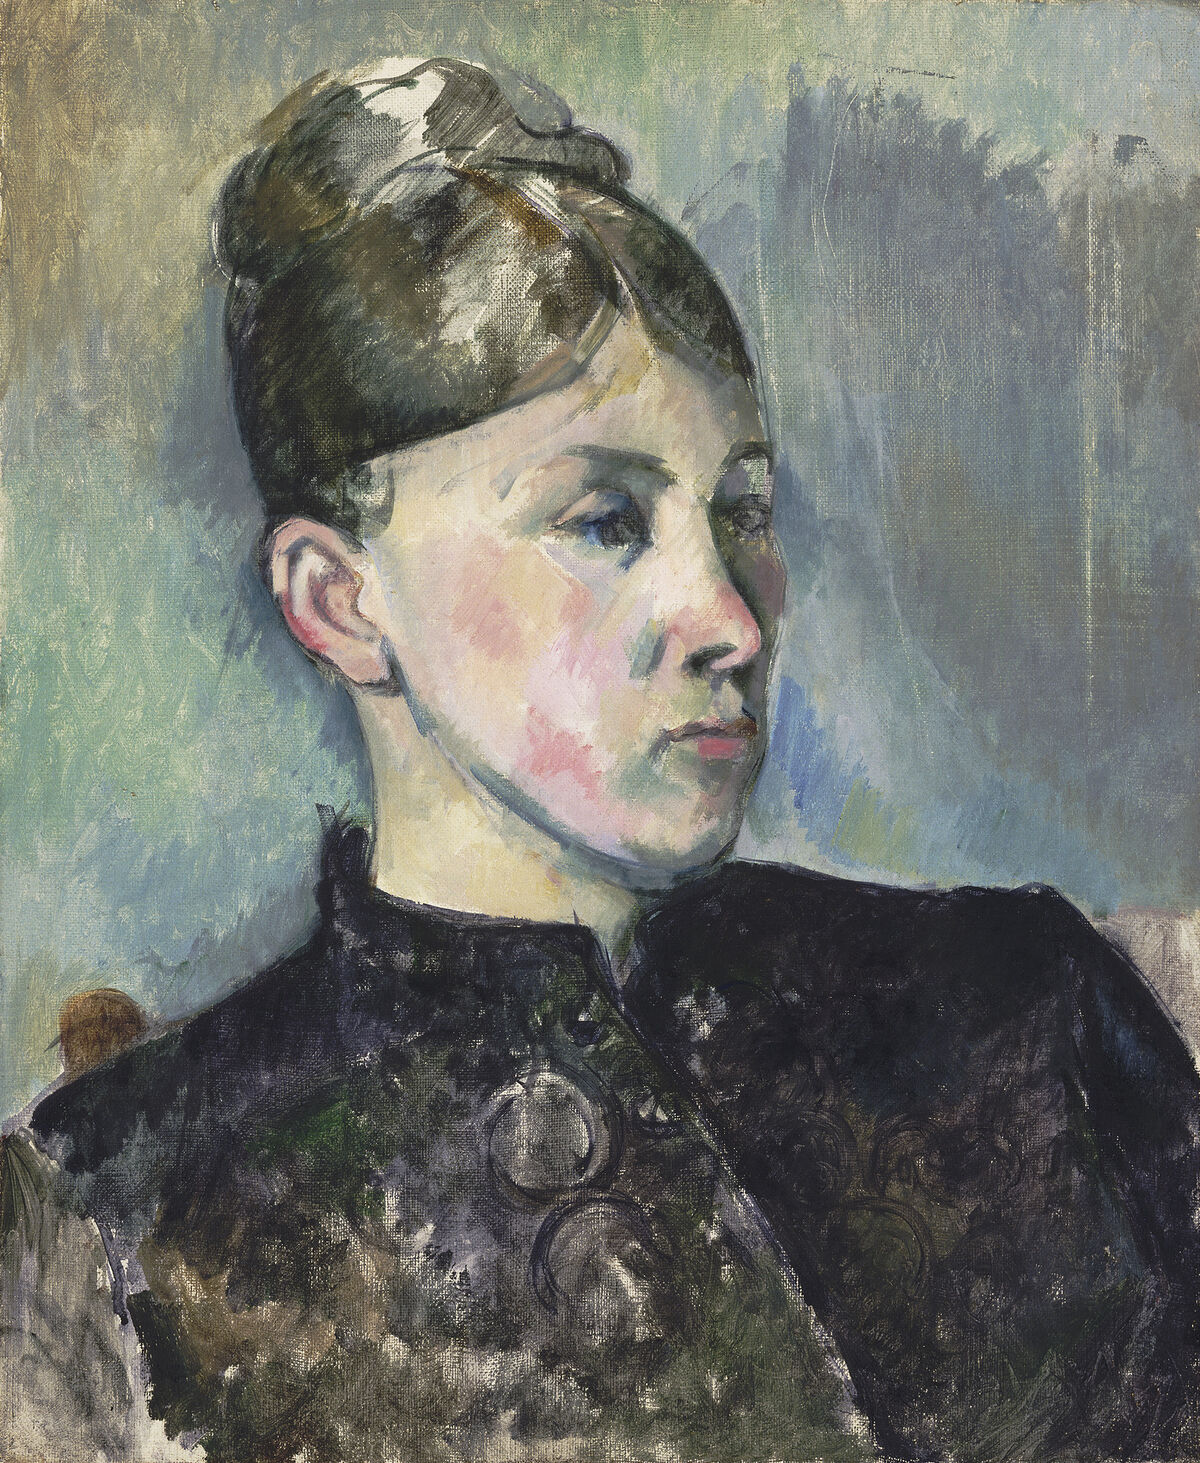 Paul Cézanne, Madame Cézanne, c. 1885. Courtesy of the National Gallery of Art.